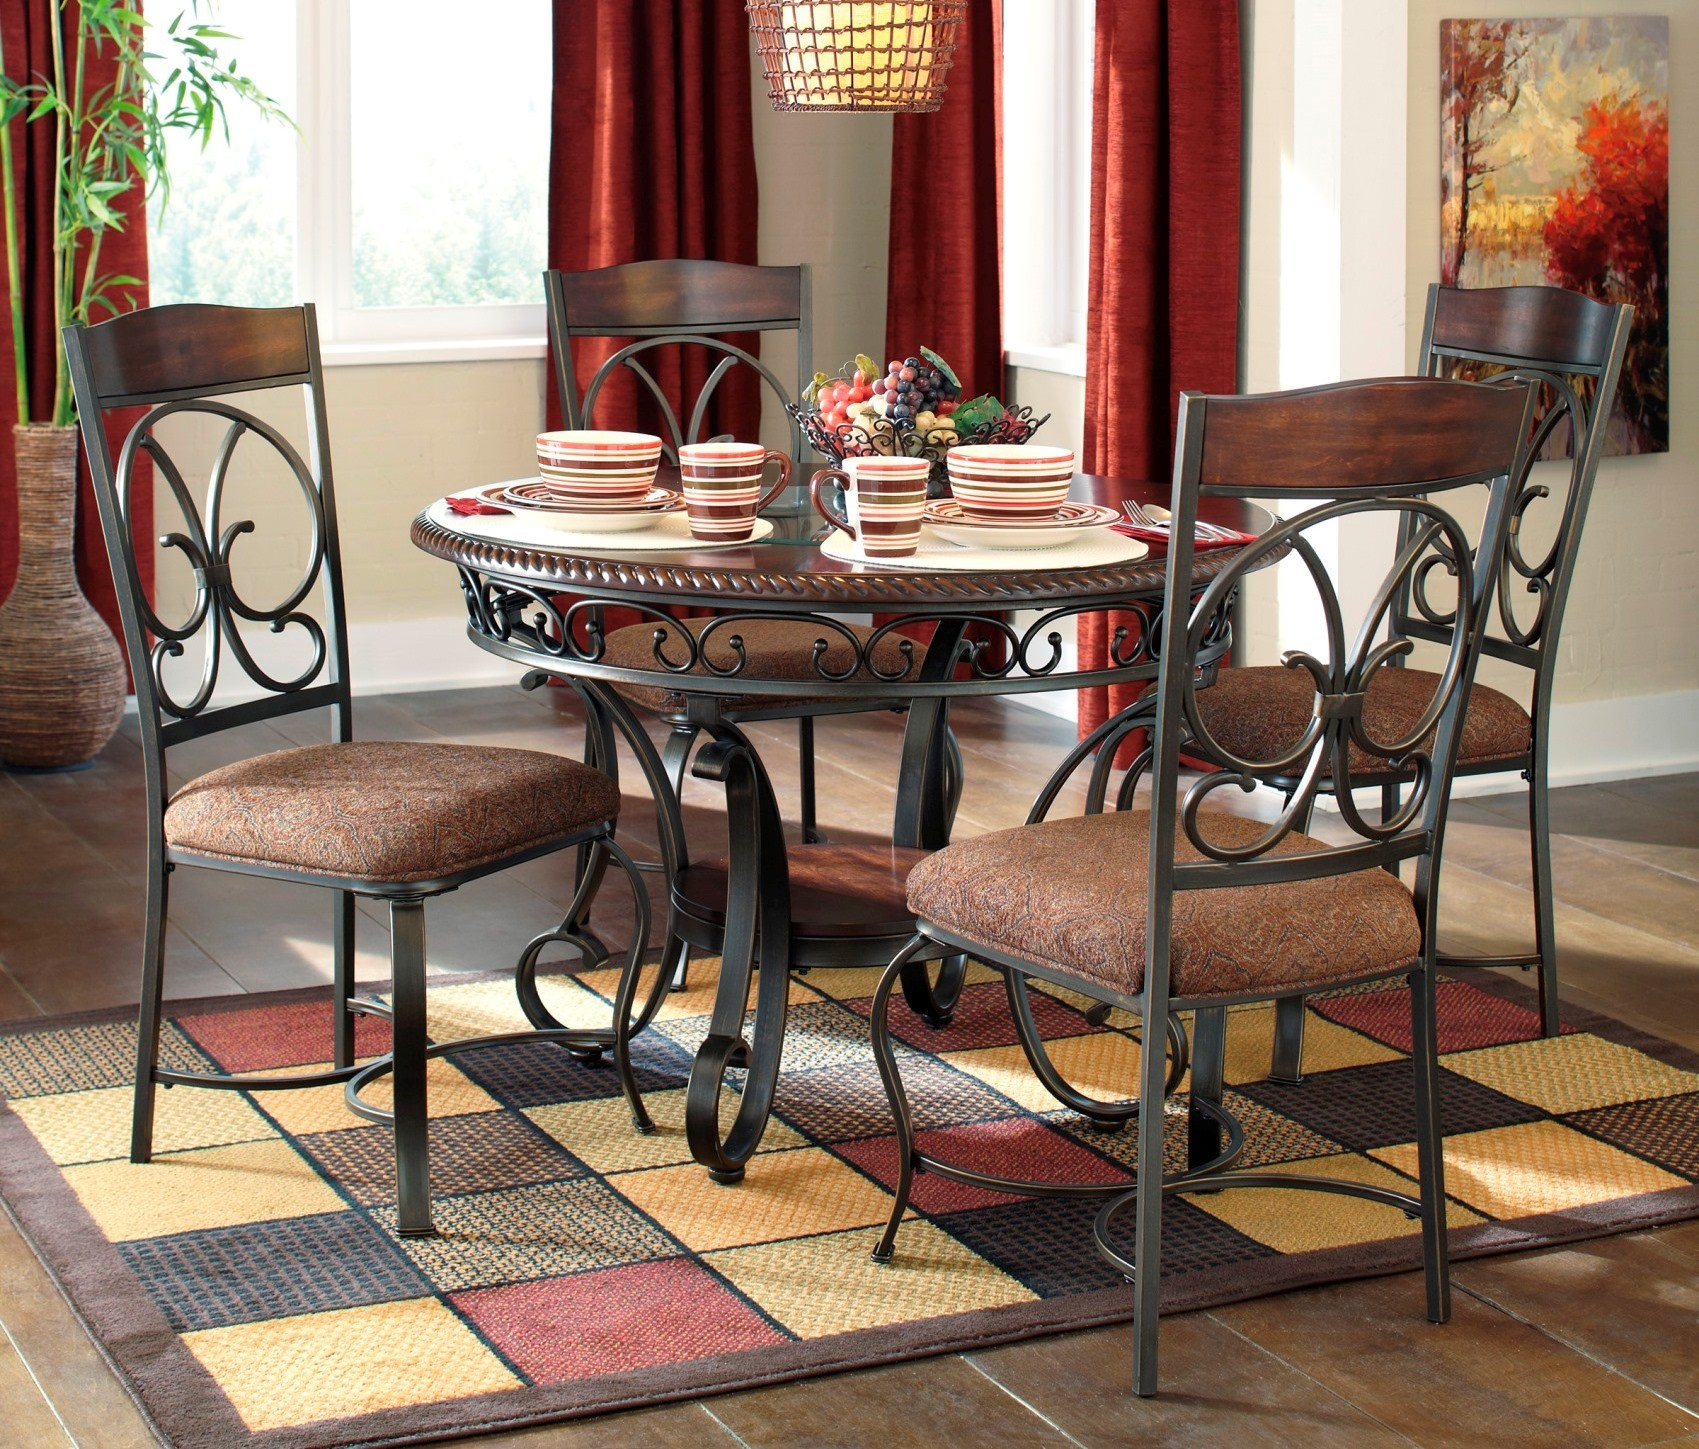 Glambrey Round Dining Room Set From Ashley (D329-15